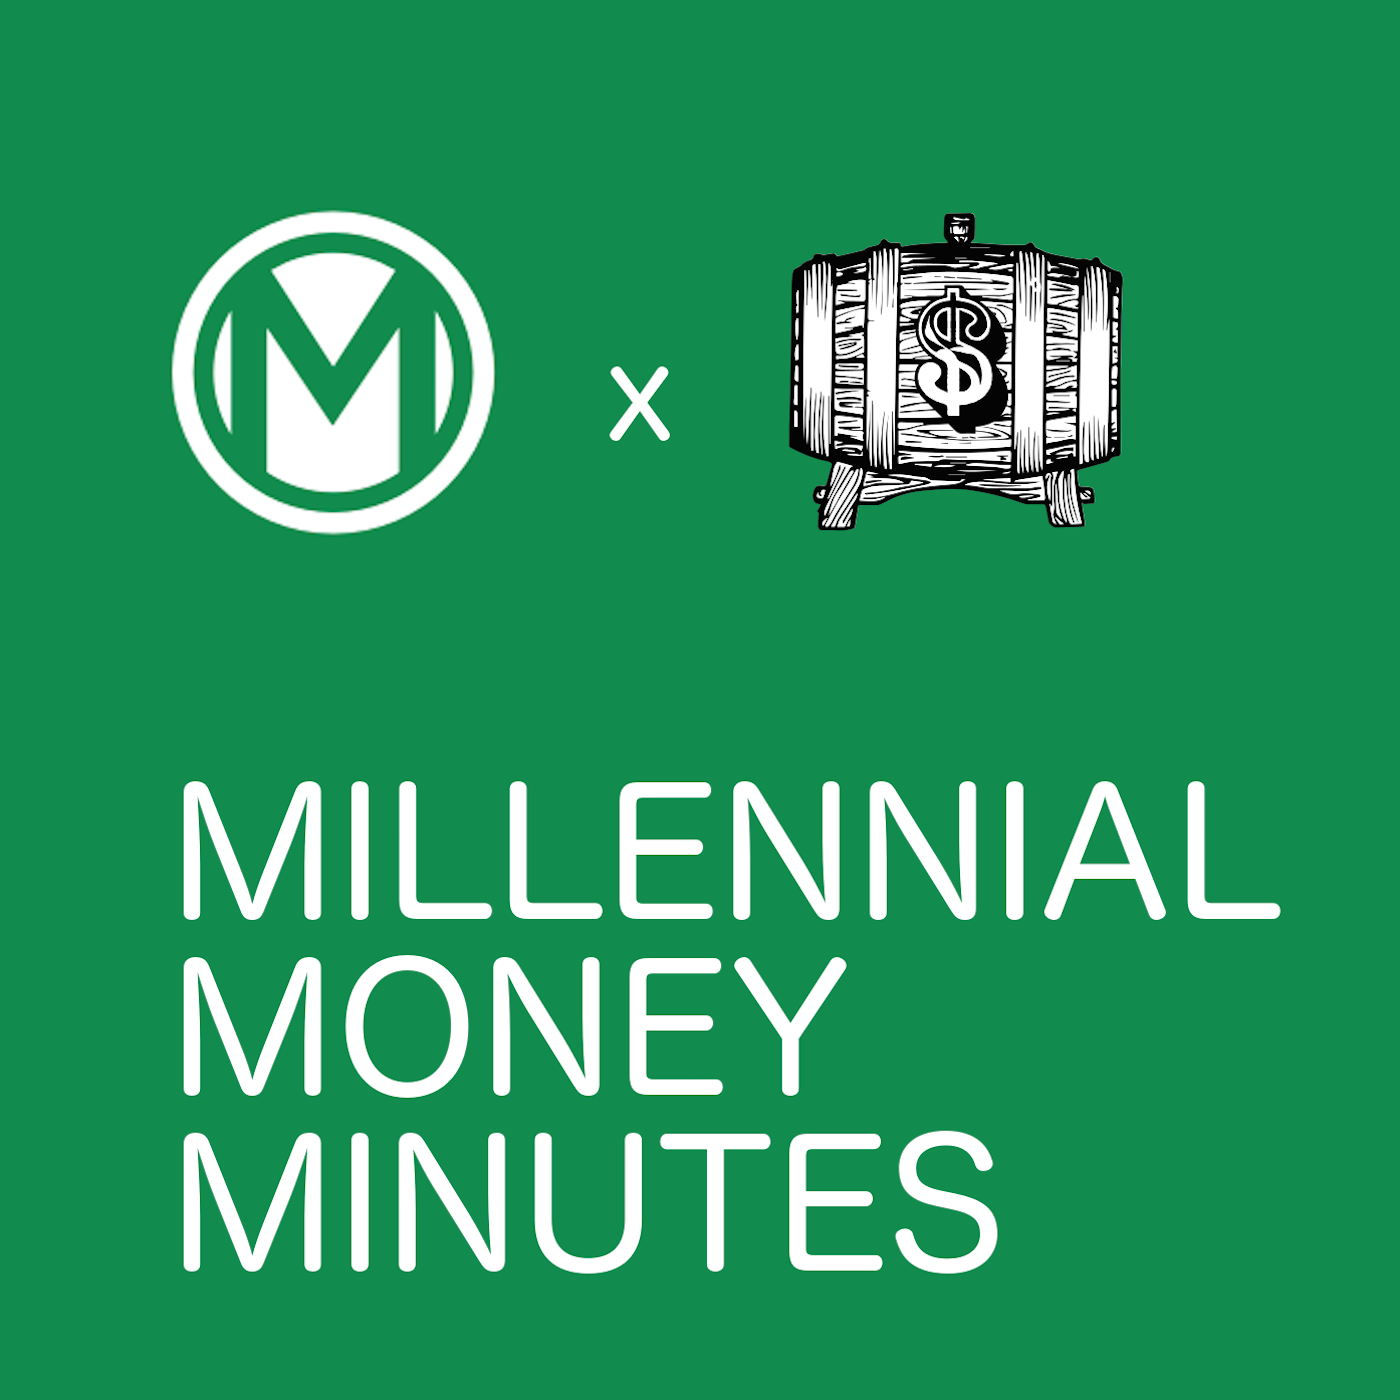 Millennial Money Minutes: Personal Finance in 5 Minutes